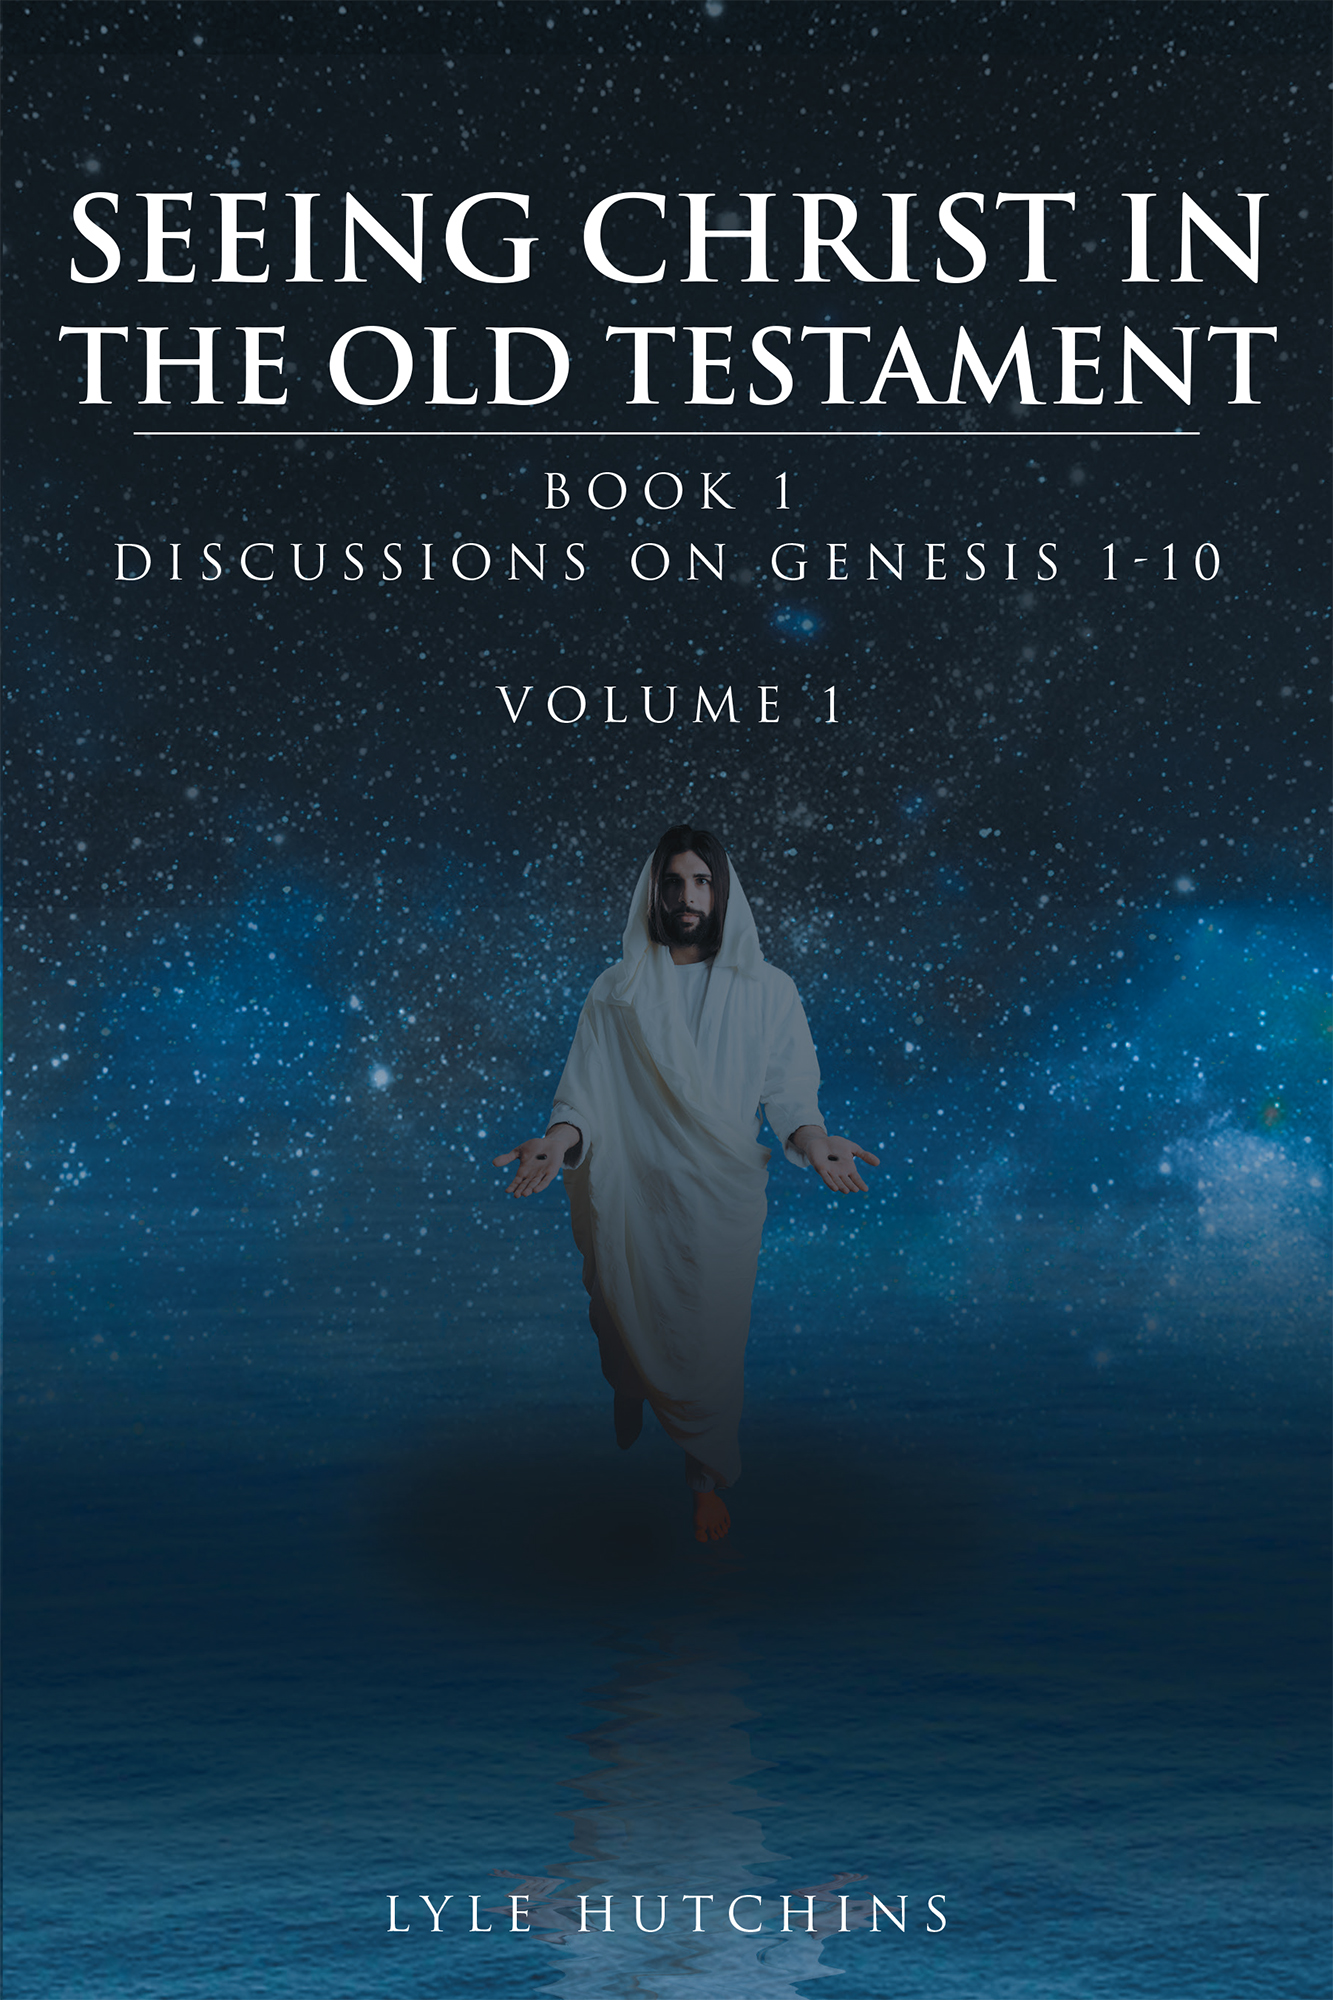 christ in the old testament The old testament (abbreviated ot) is the first part of christian bibles, based primarily upon the hebrew bible (or tanakh), a collection of ancient religious writings by the israelites believed by most christians and religious jews to be the sacred word of god.